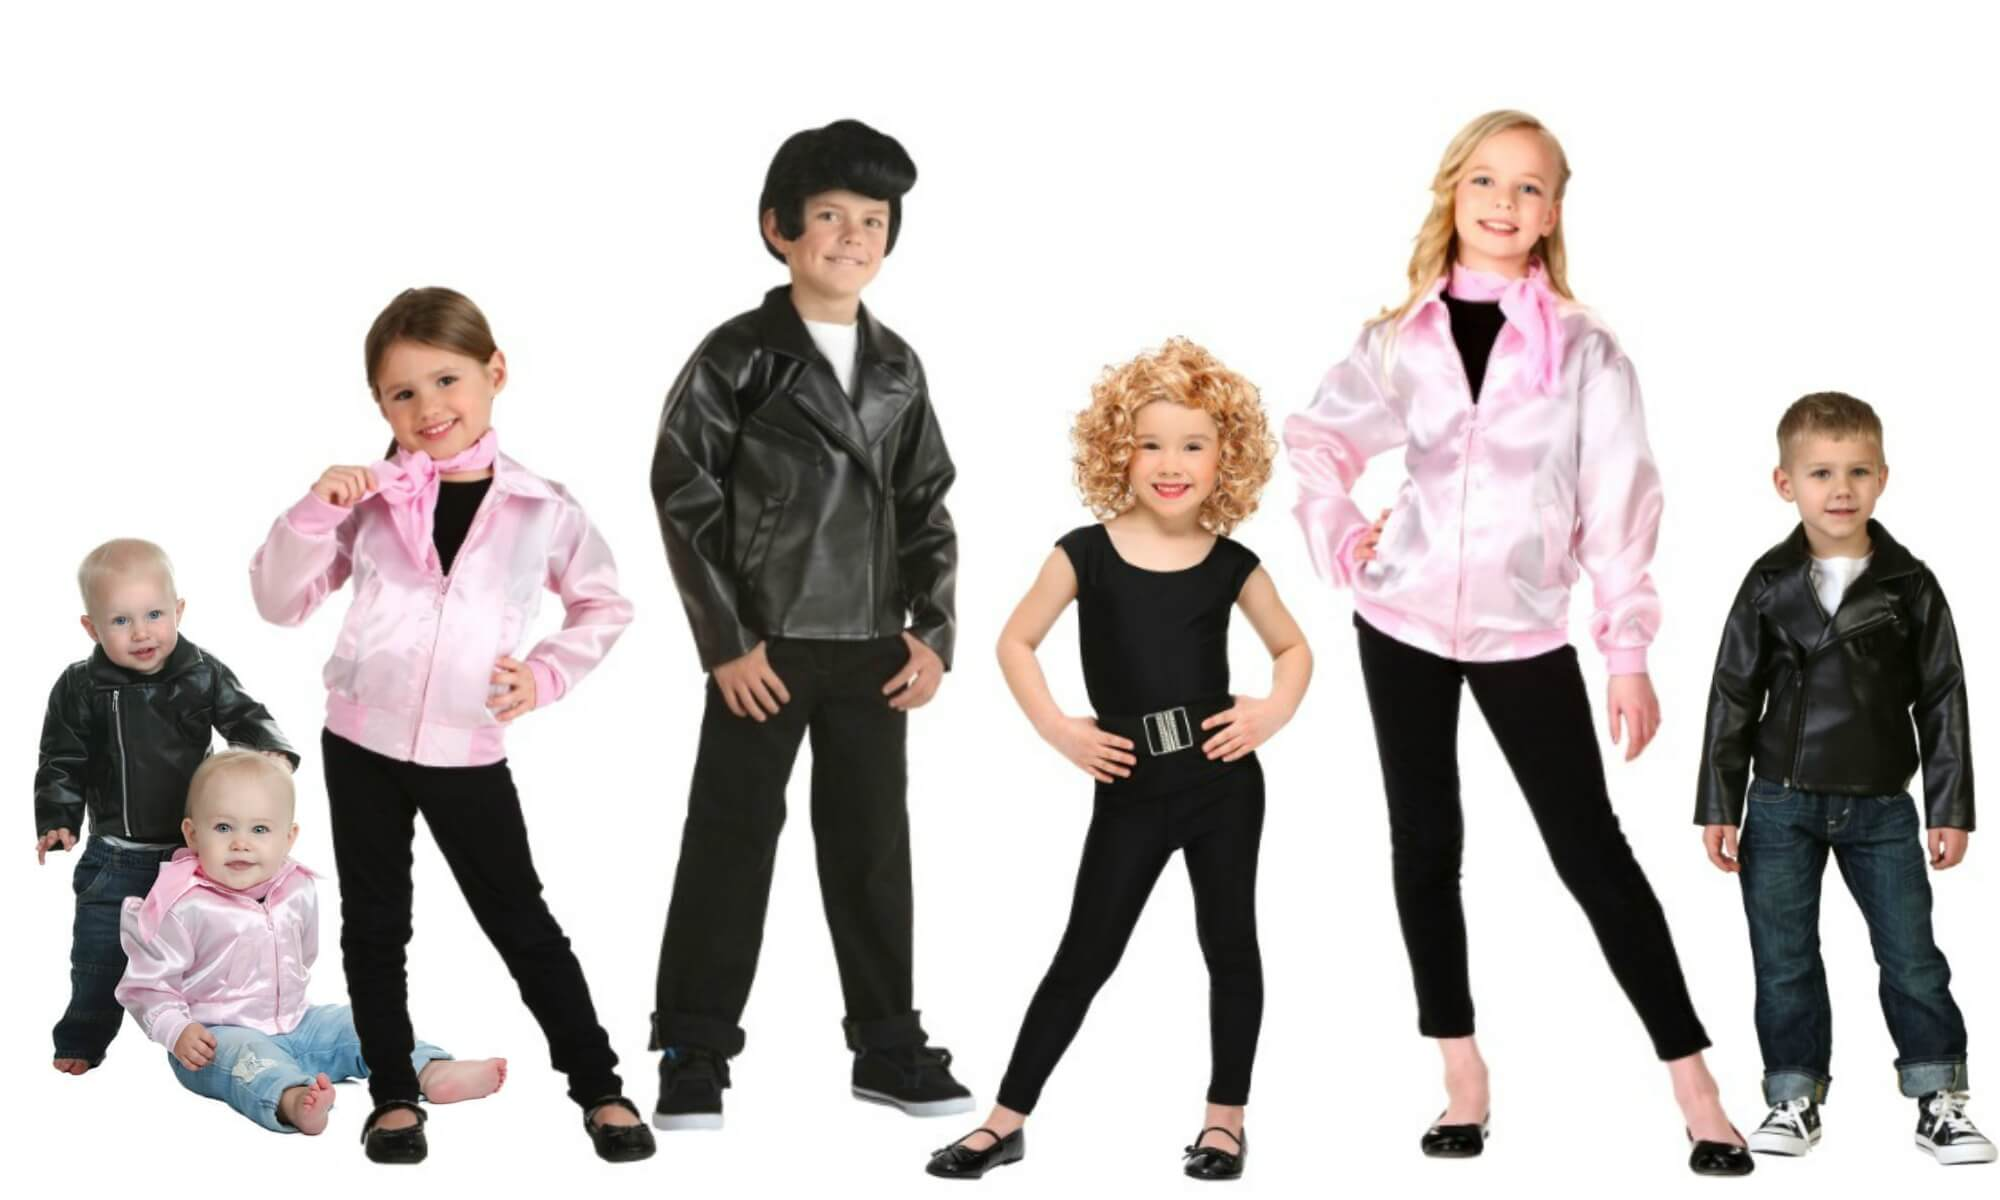 Grease costumes for kids